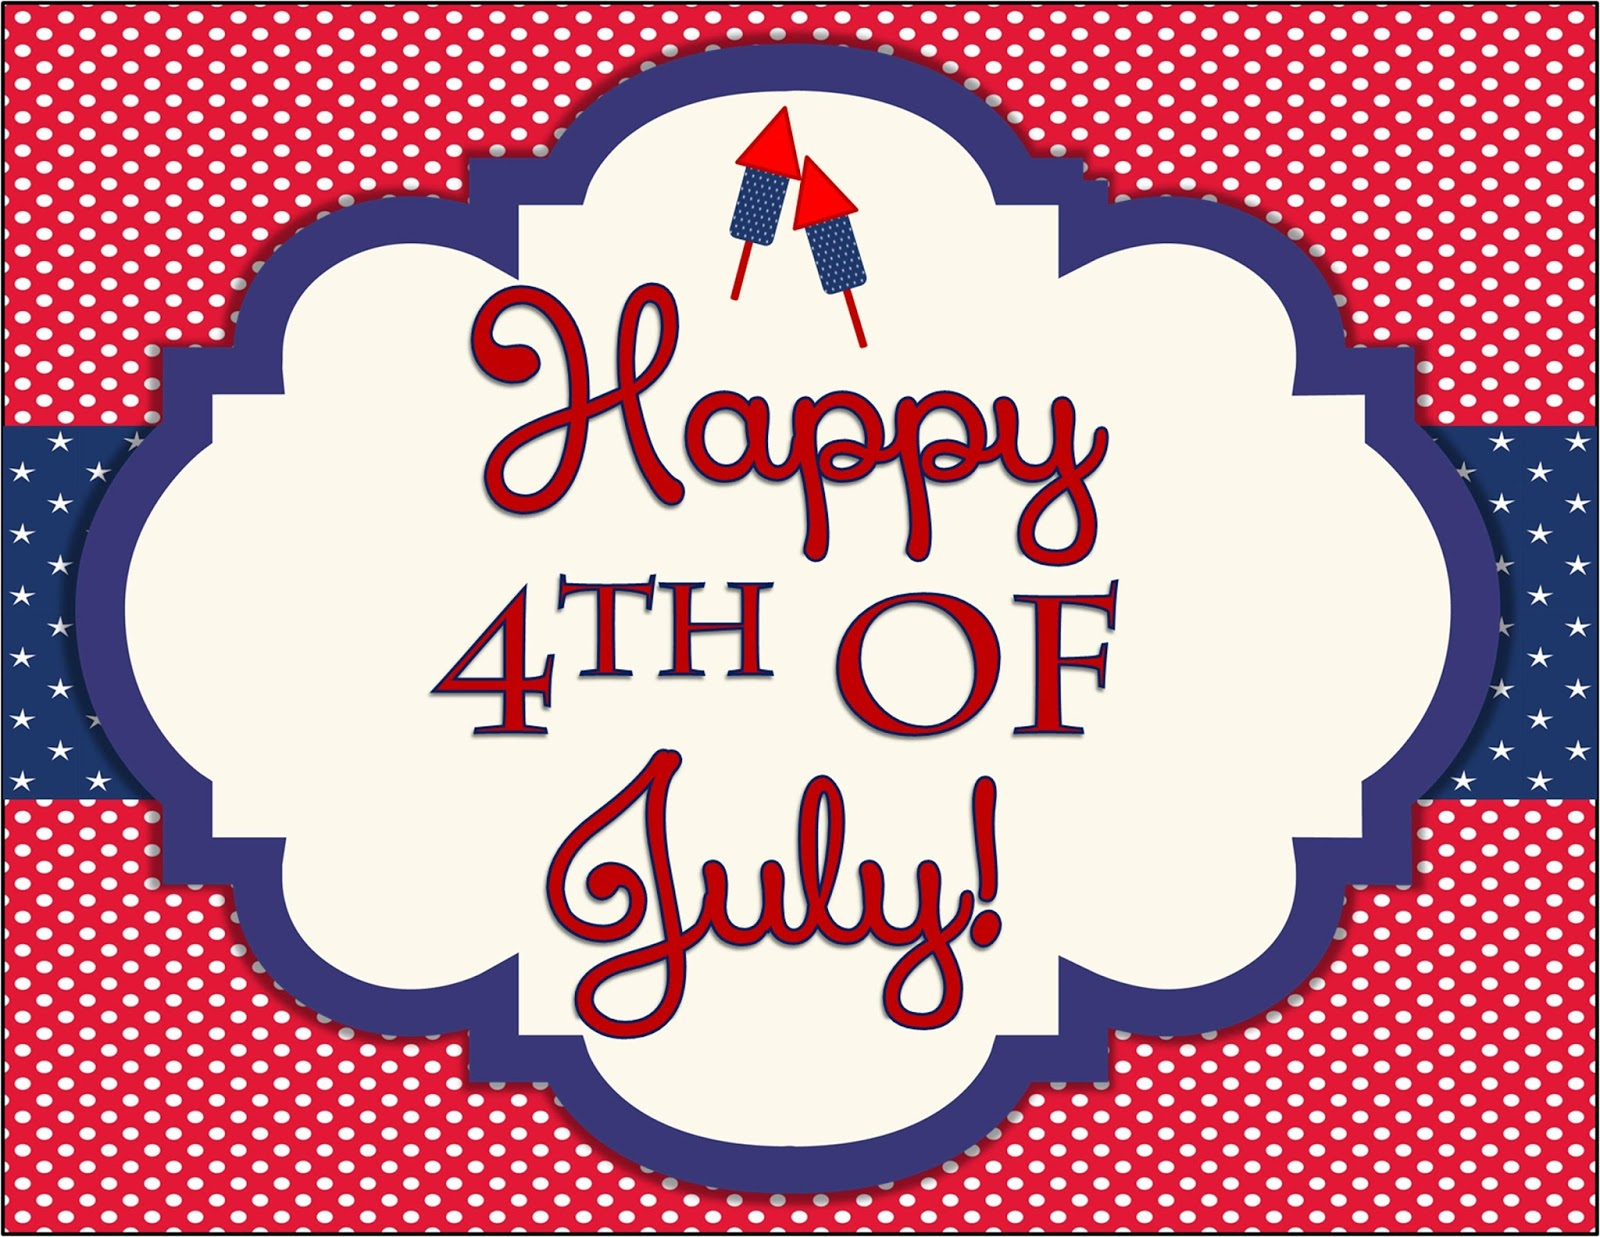 Save 4th Of July Banner Free Image